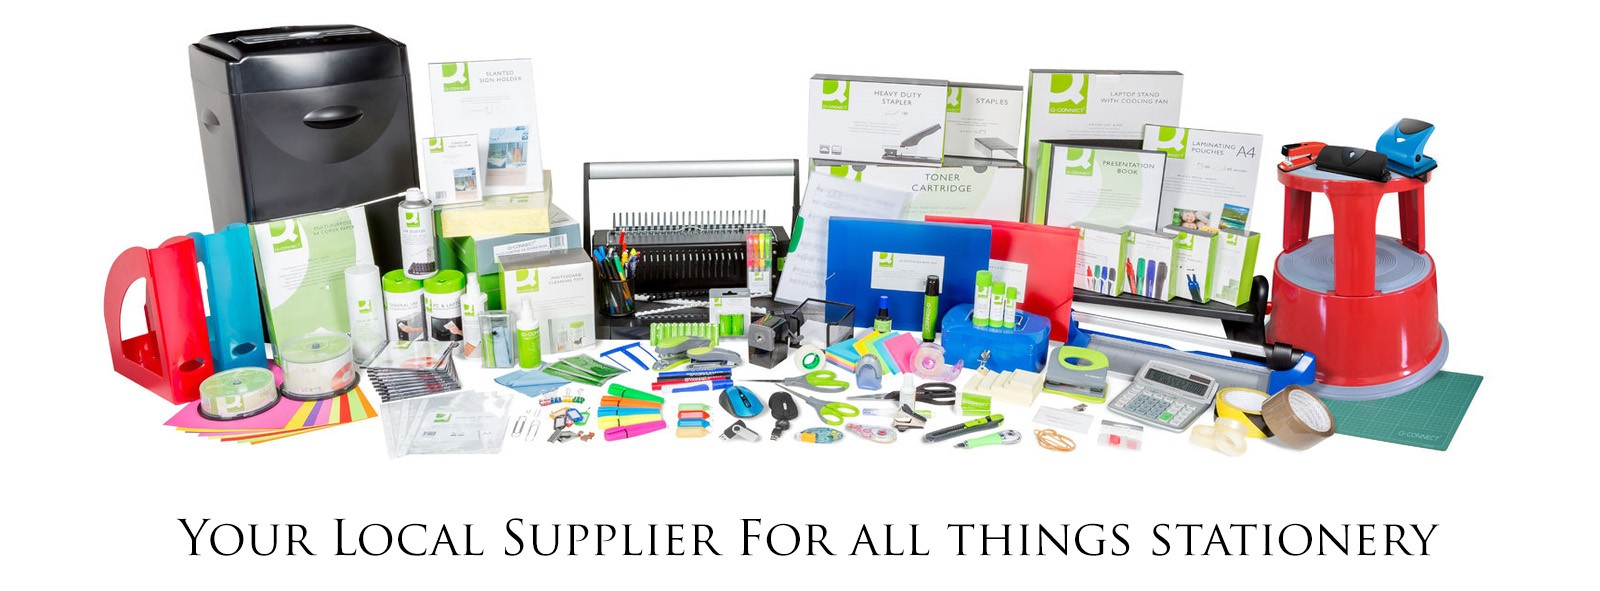 Your Local Stationery Supplier